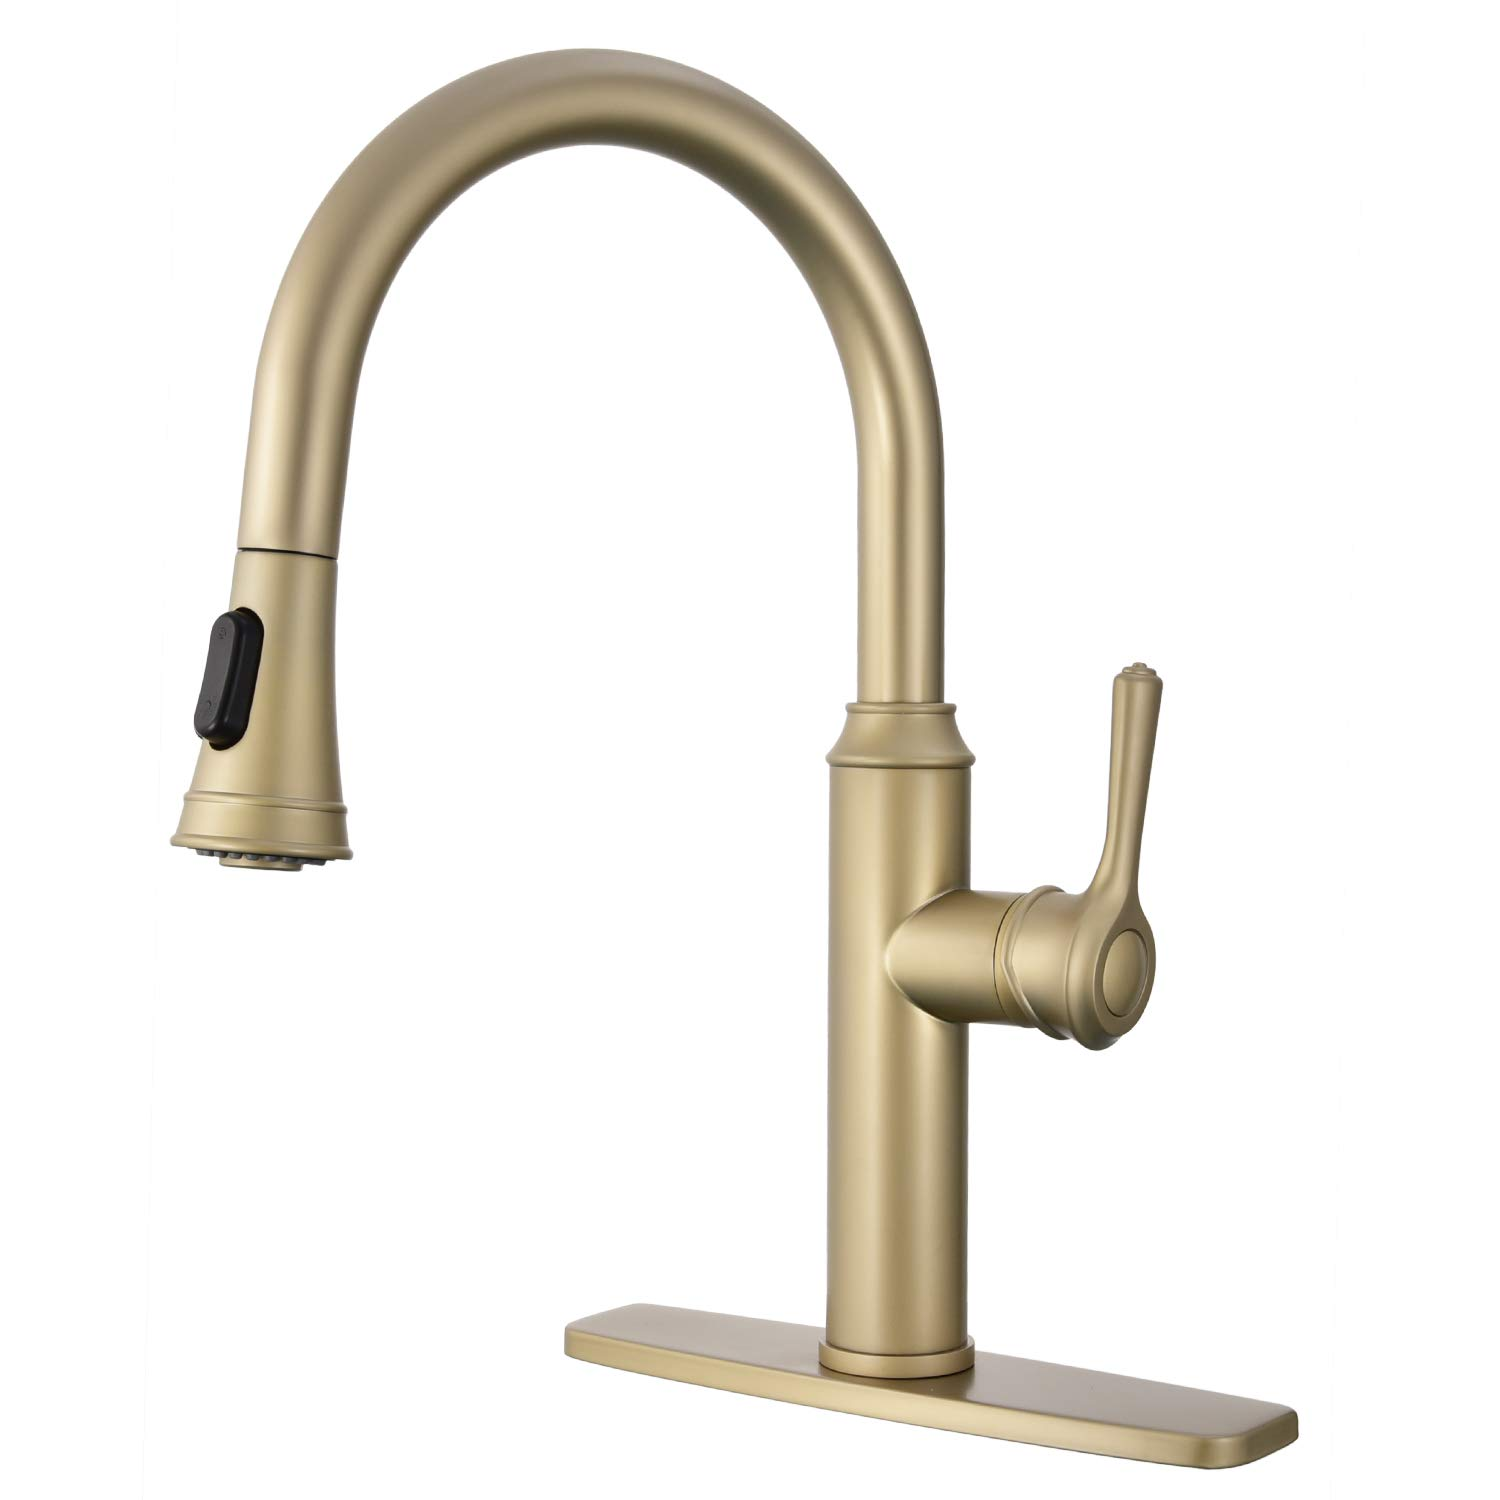 Peppermint Kitchen Sink Faucet Matte Champagne Bronze Single Handle with Pull Down Sprayer Matte Gold by Peppermint (Image #1)